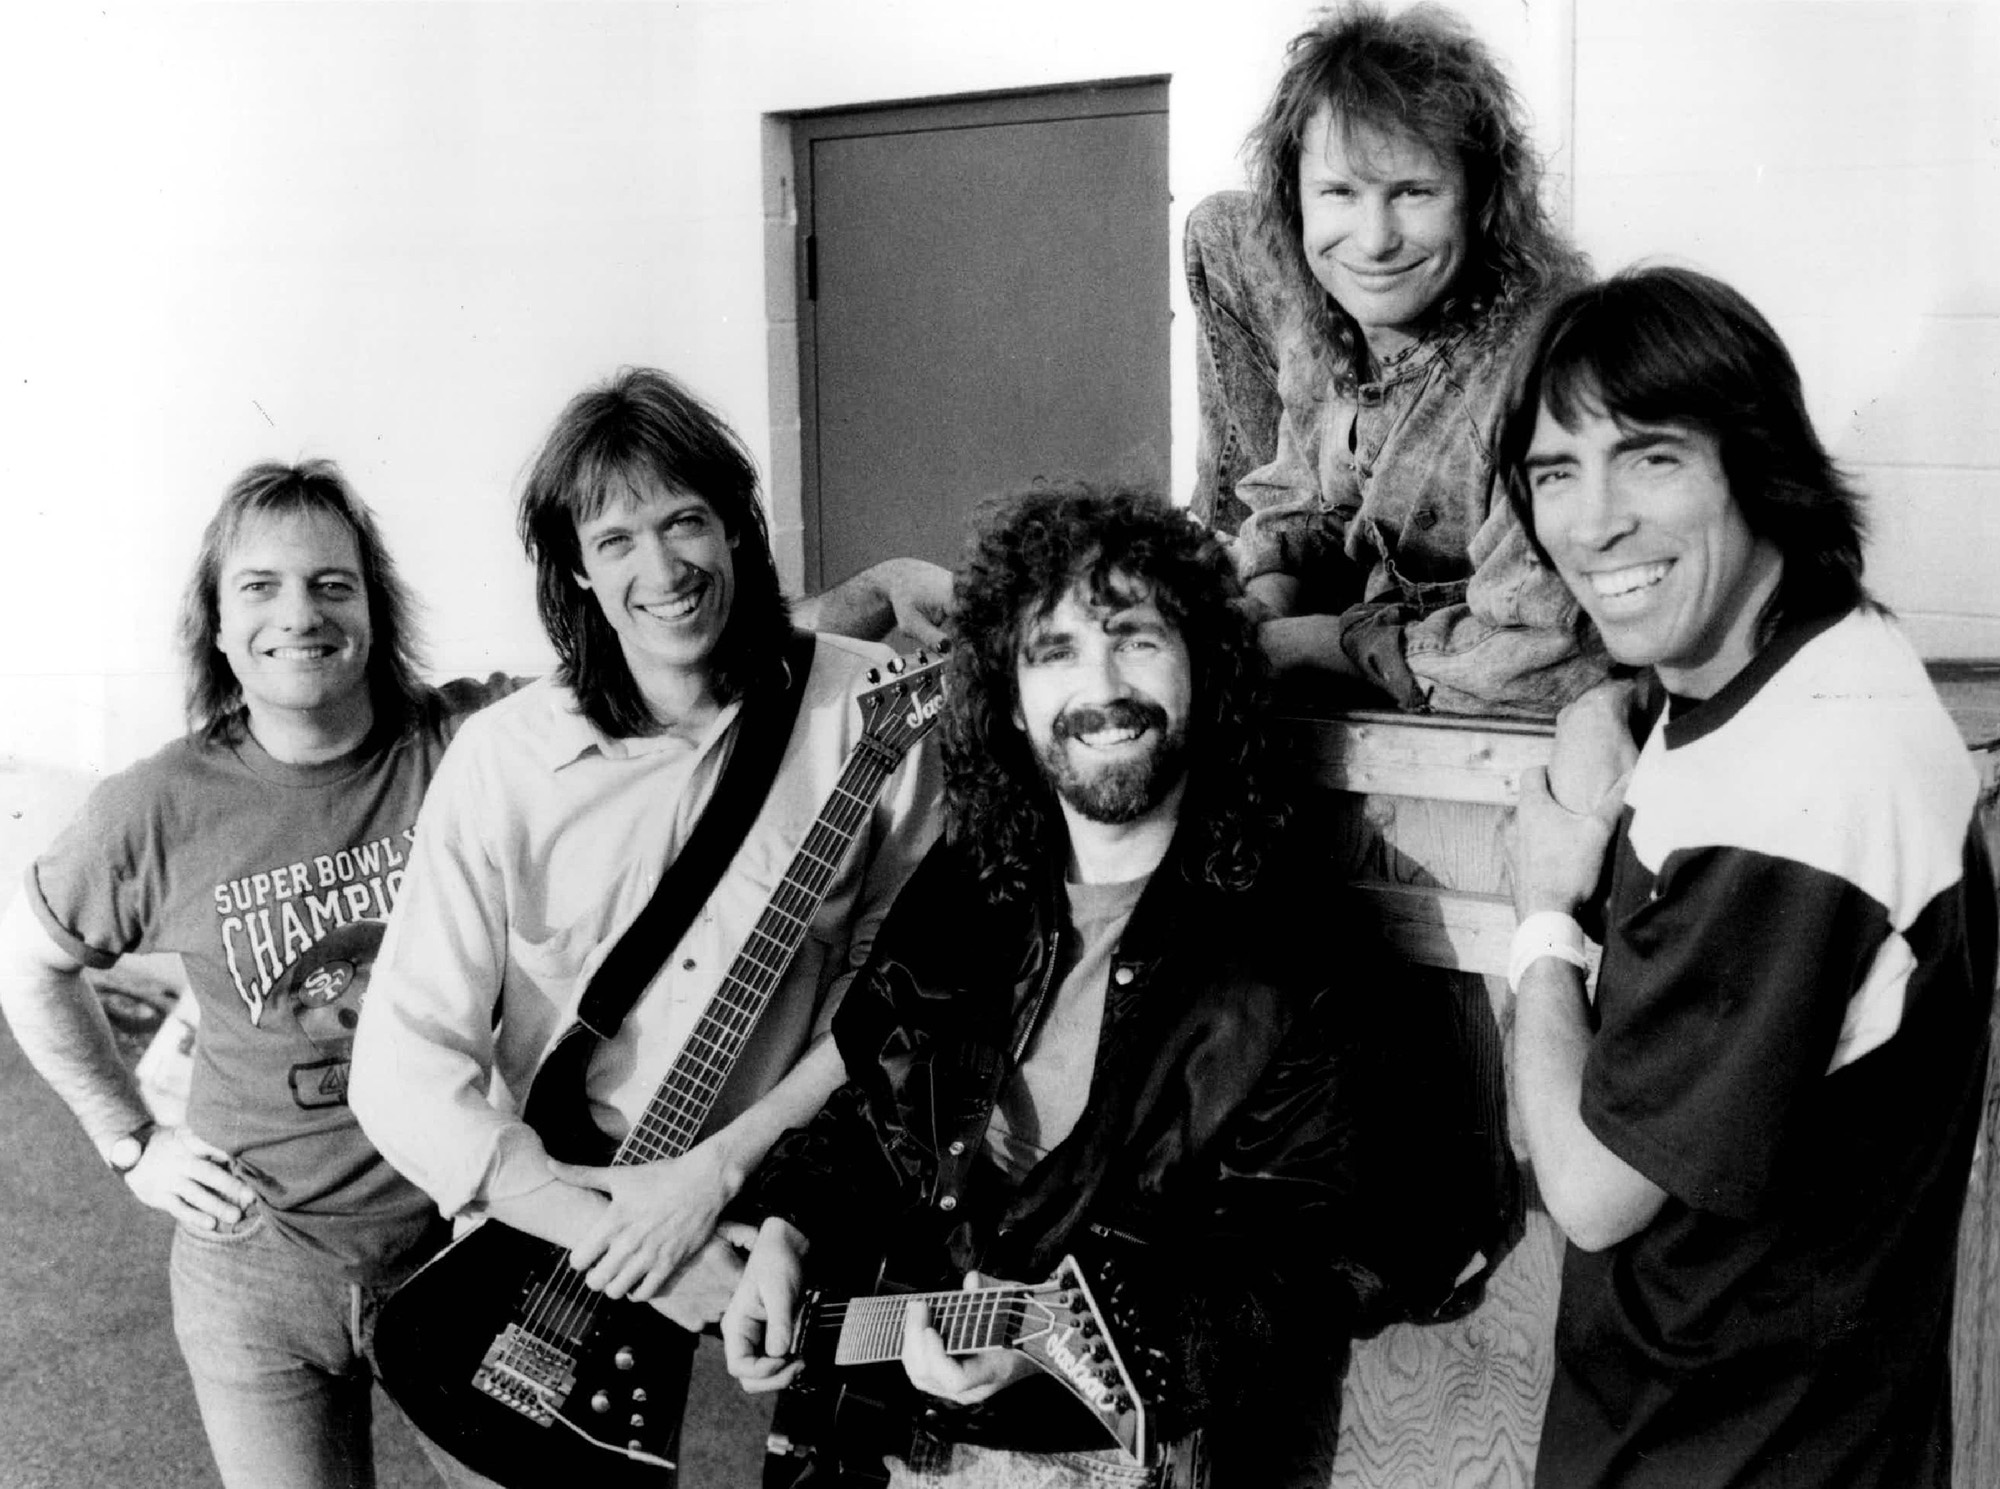 Doug Huffman, Gary Phil, Brad Delp, David Sikes, Tom Scholz.